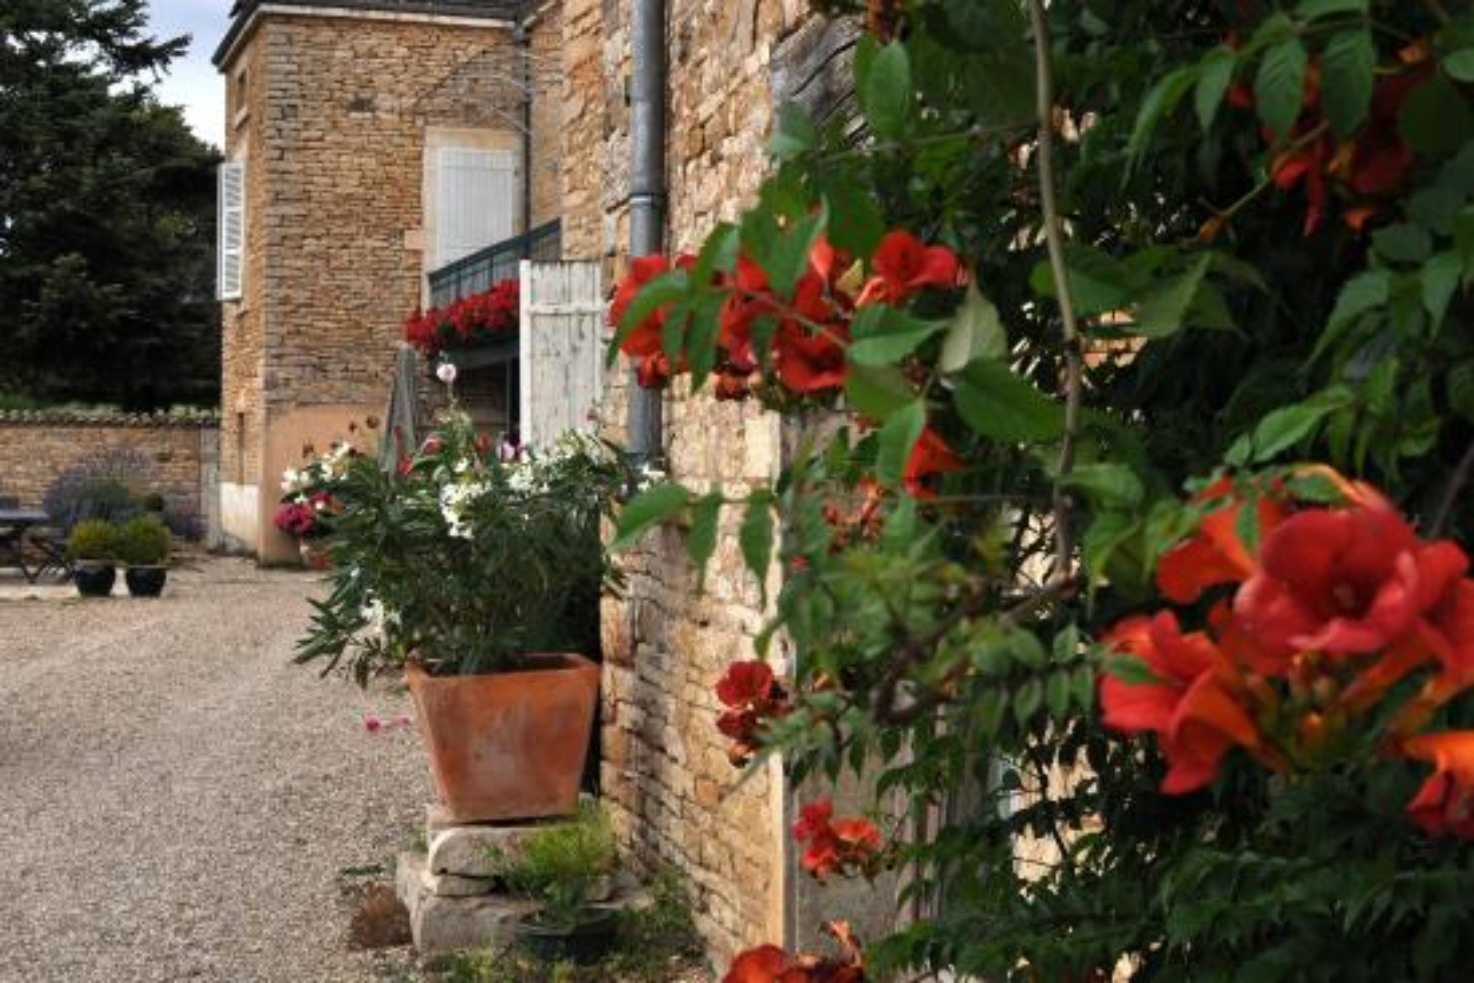 A vase of flowers on a brick building at Le Crot Foulot.